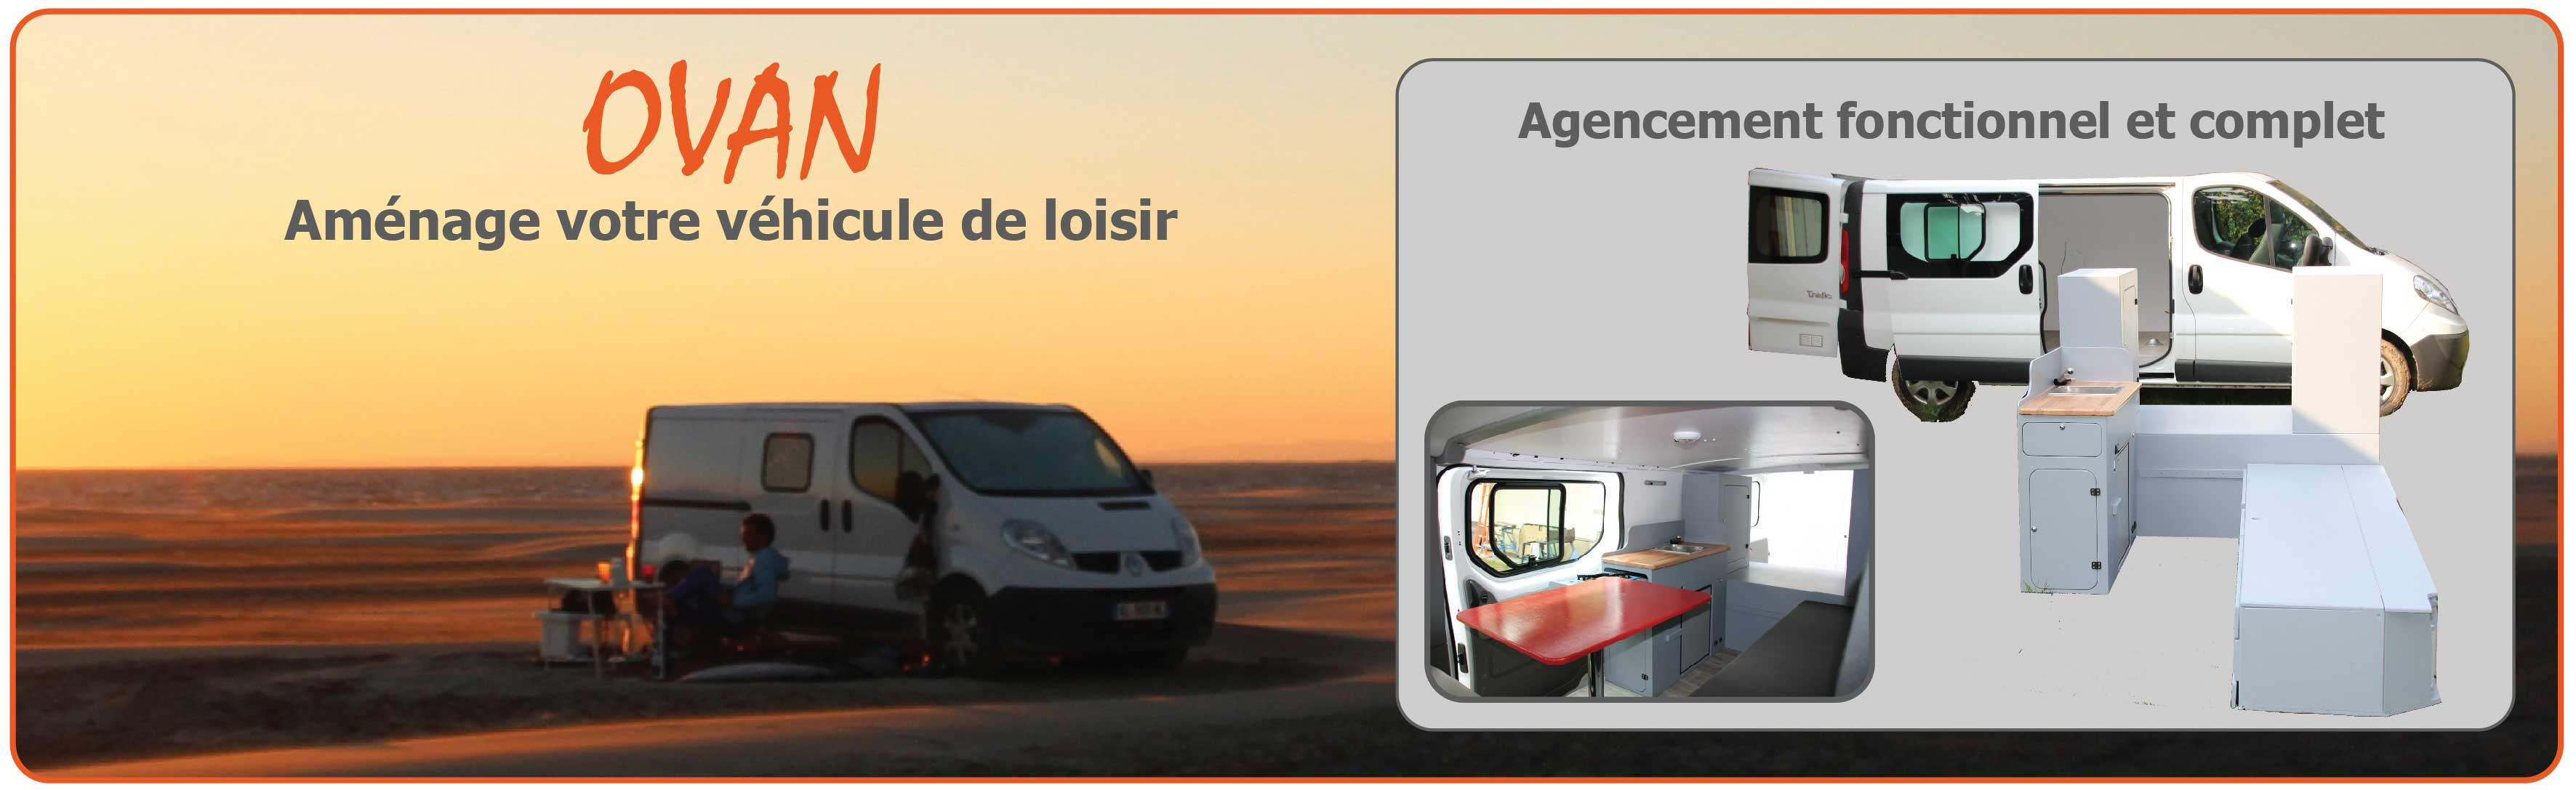 Kit amenagement fourgon camping car trafic